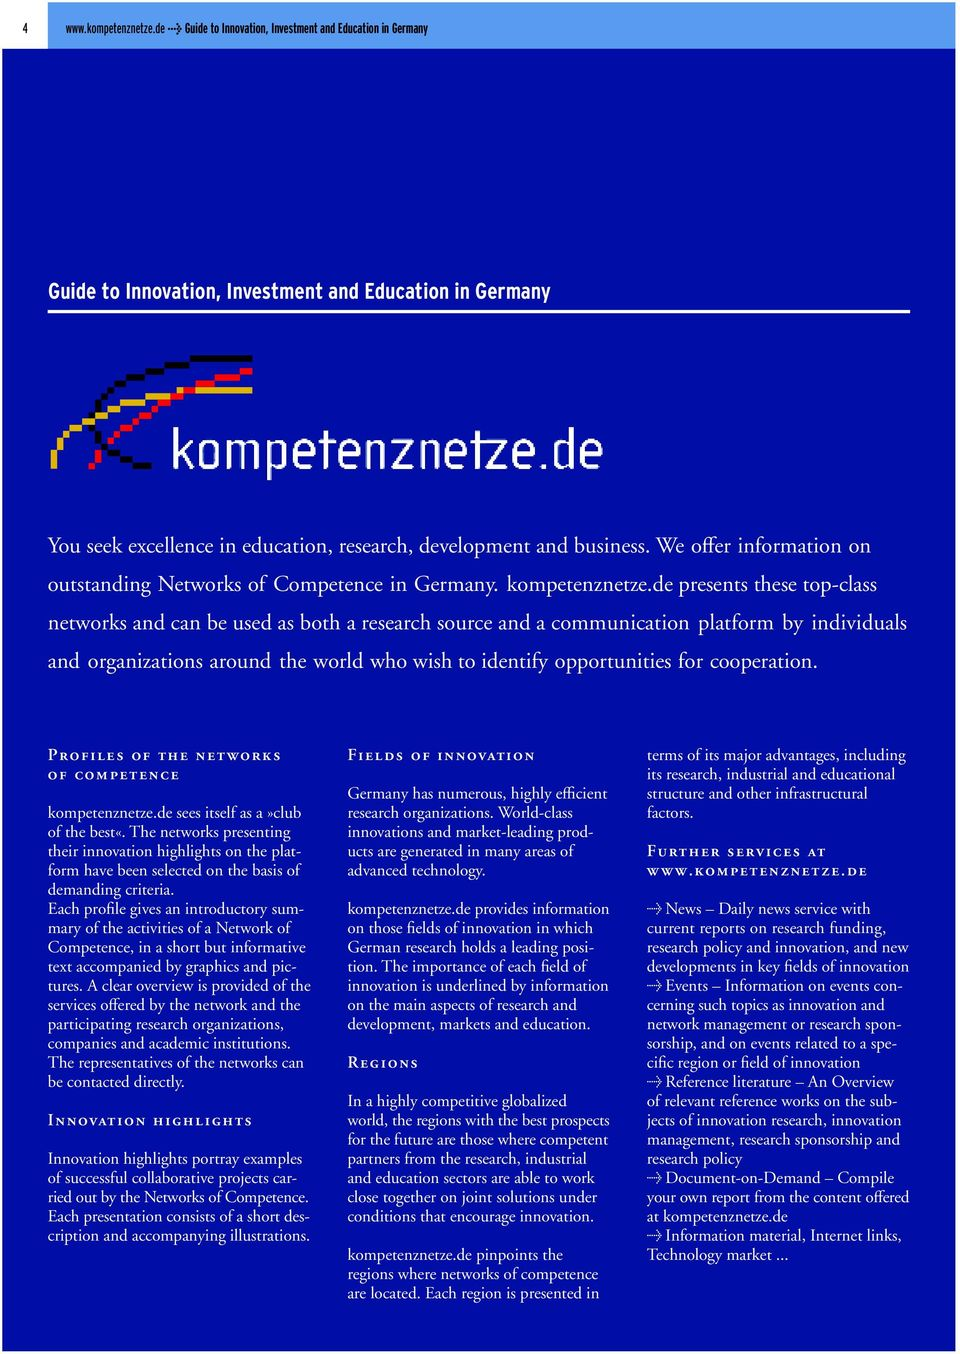 We offer information on outstanding Networks of Competence in Germany. kompetenznetze.